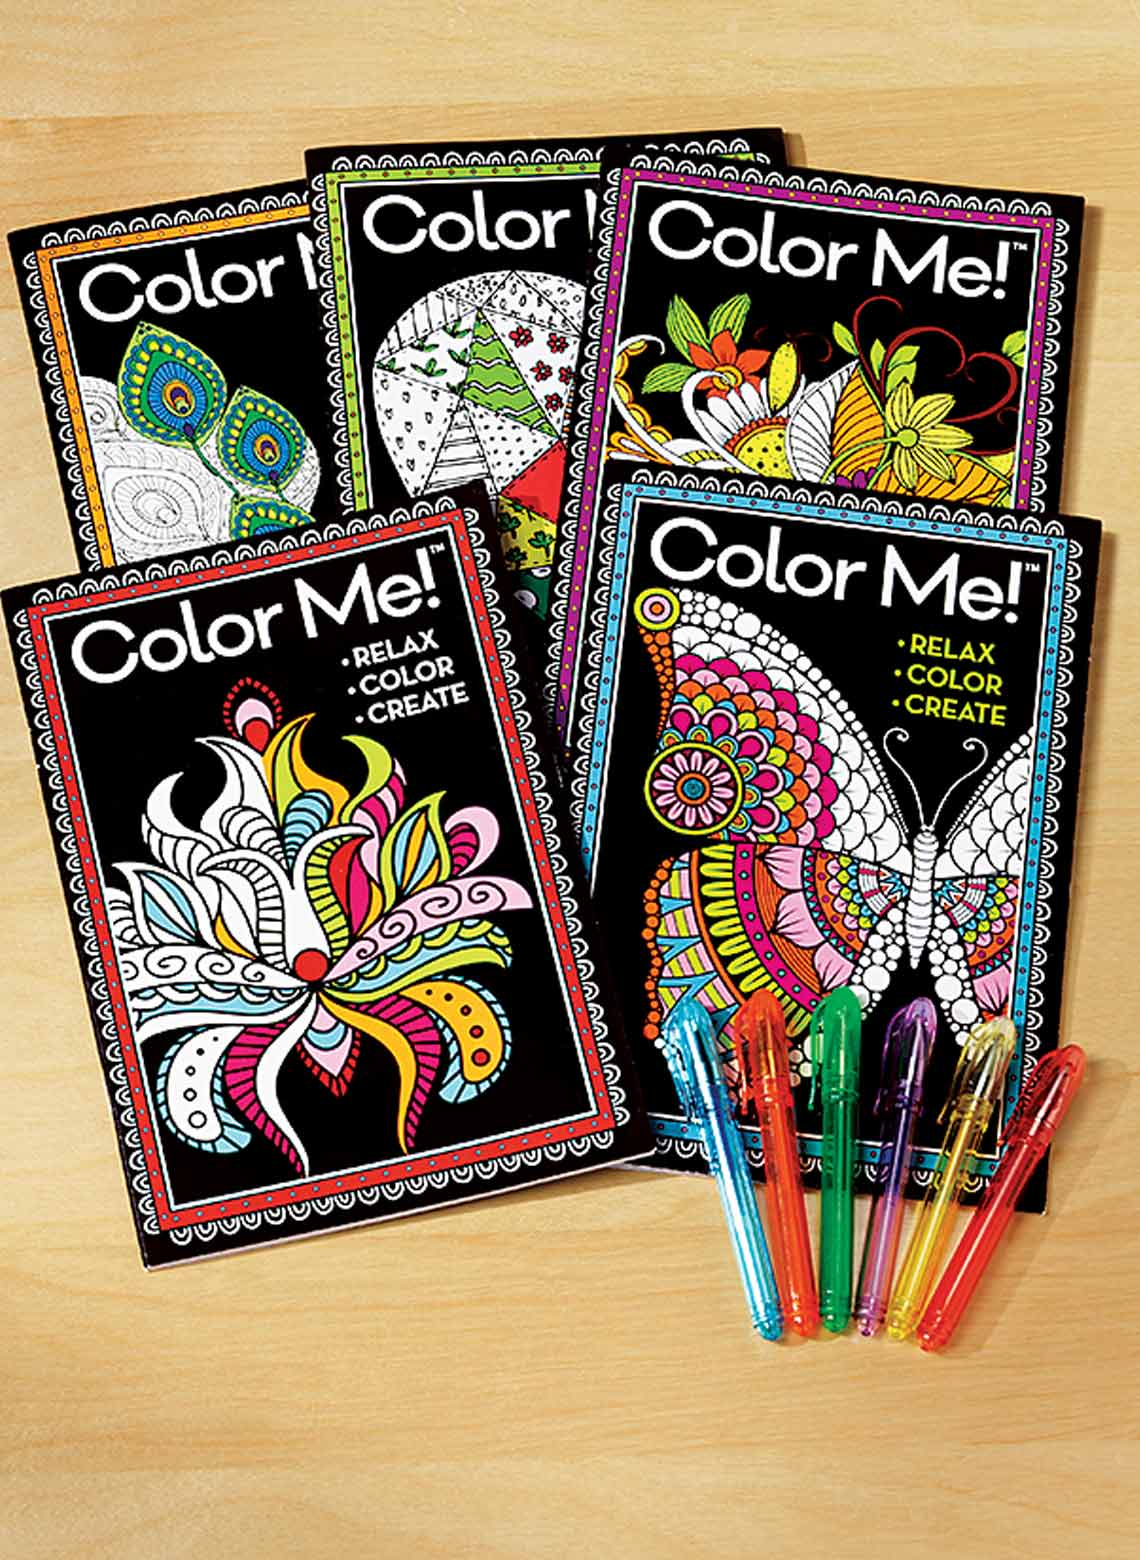 Color Me! Coloring Books & Gel Pens | CarolWrightGifts.com